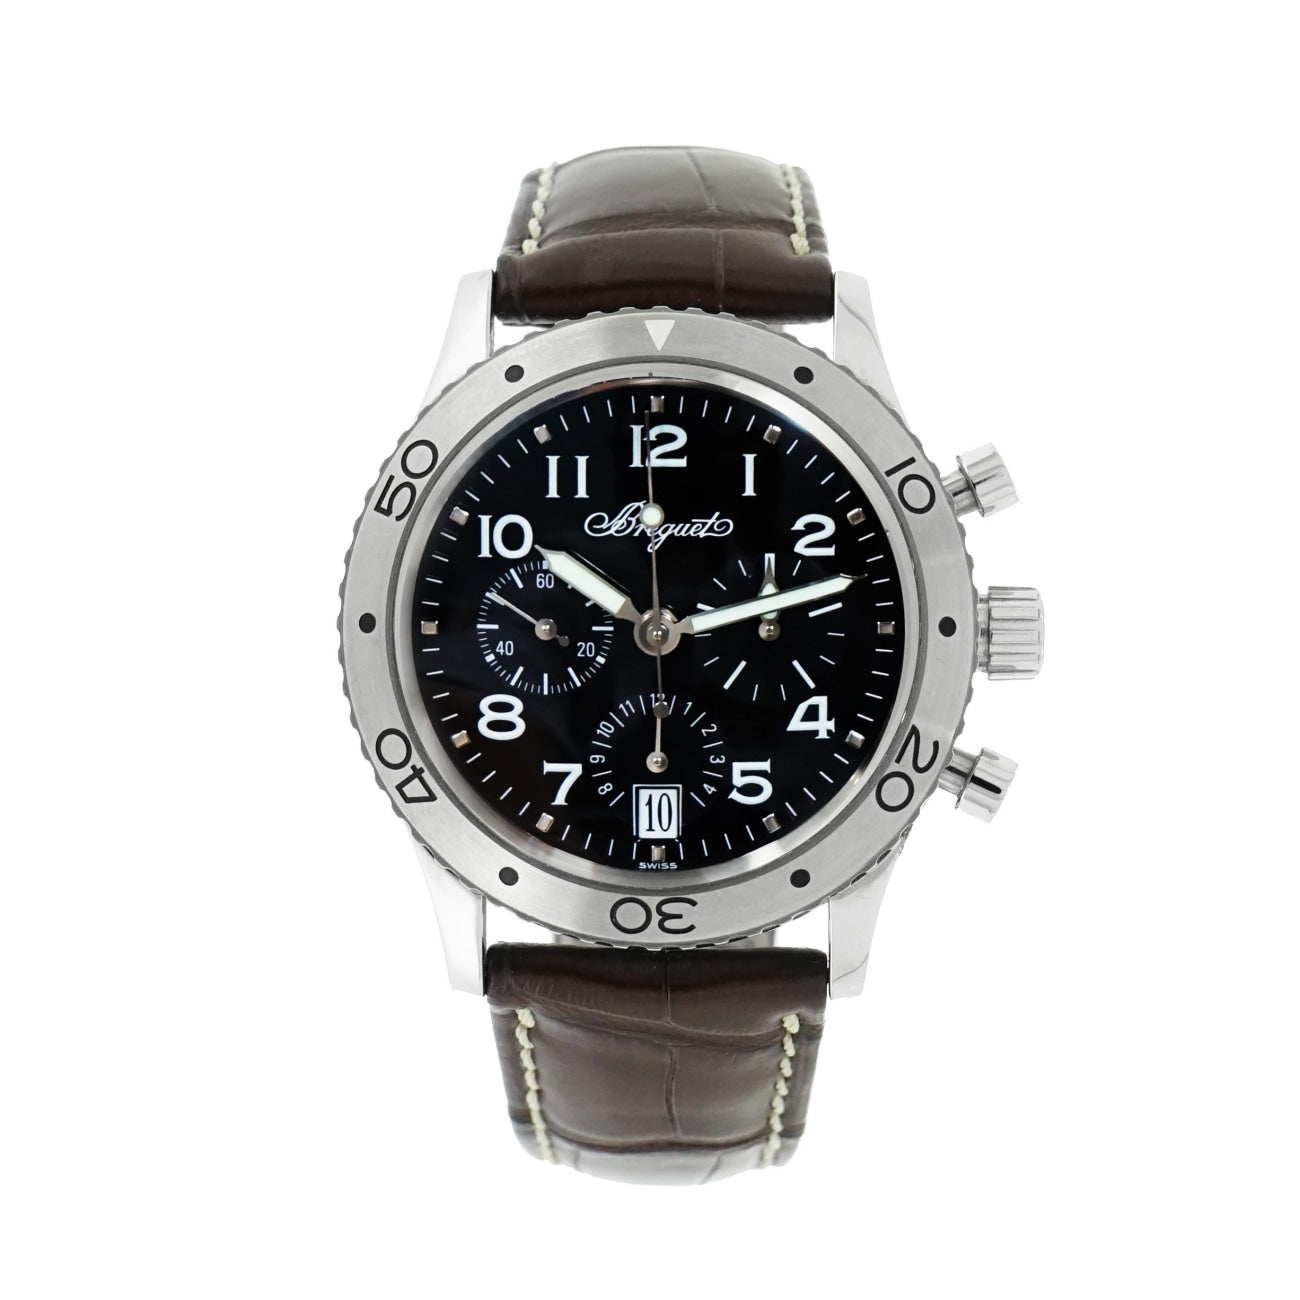 Pre-Owned Breguet Watches - Excellent Breguet Type XX Transatlantique in Stainless Steel | Manfredi Jewels